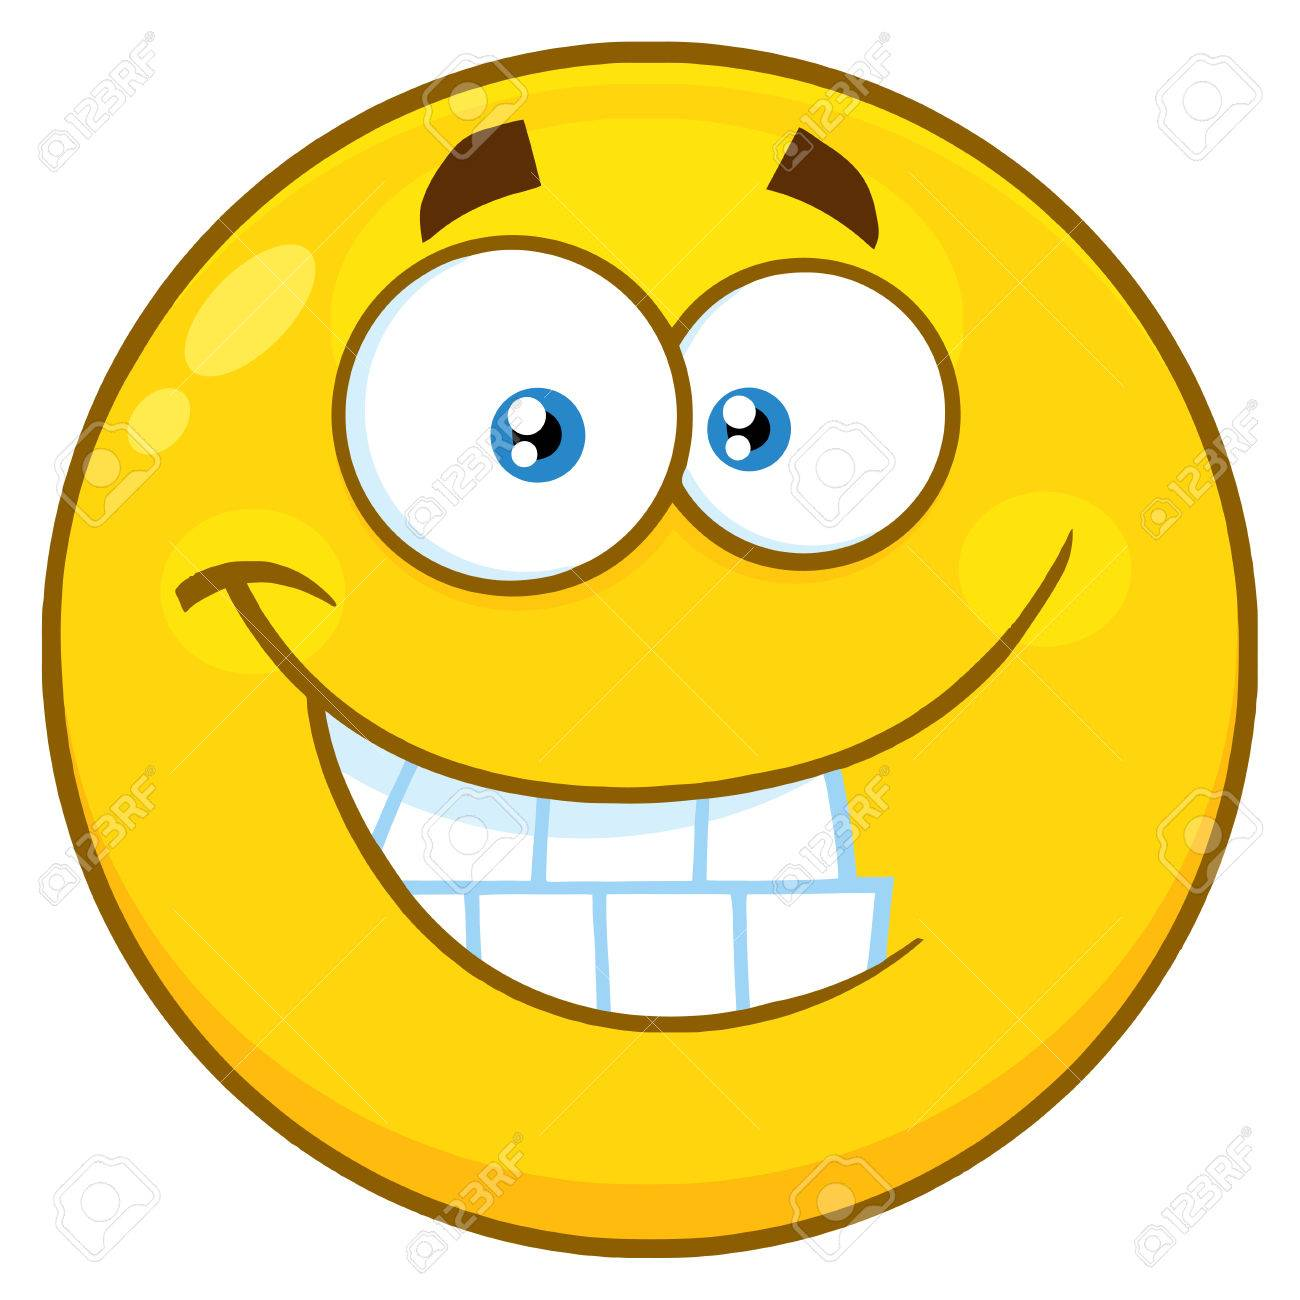 1300x1300 Funny Yellow Cartoon Smiley Face Character With Smiling Expression